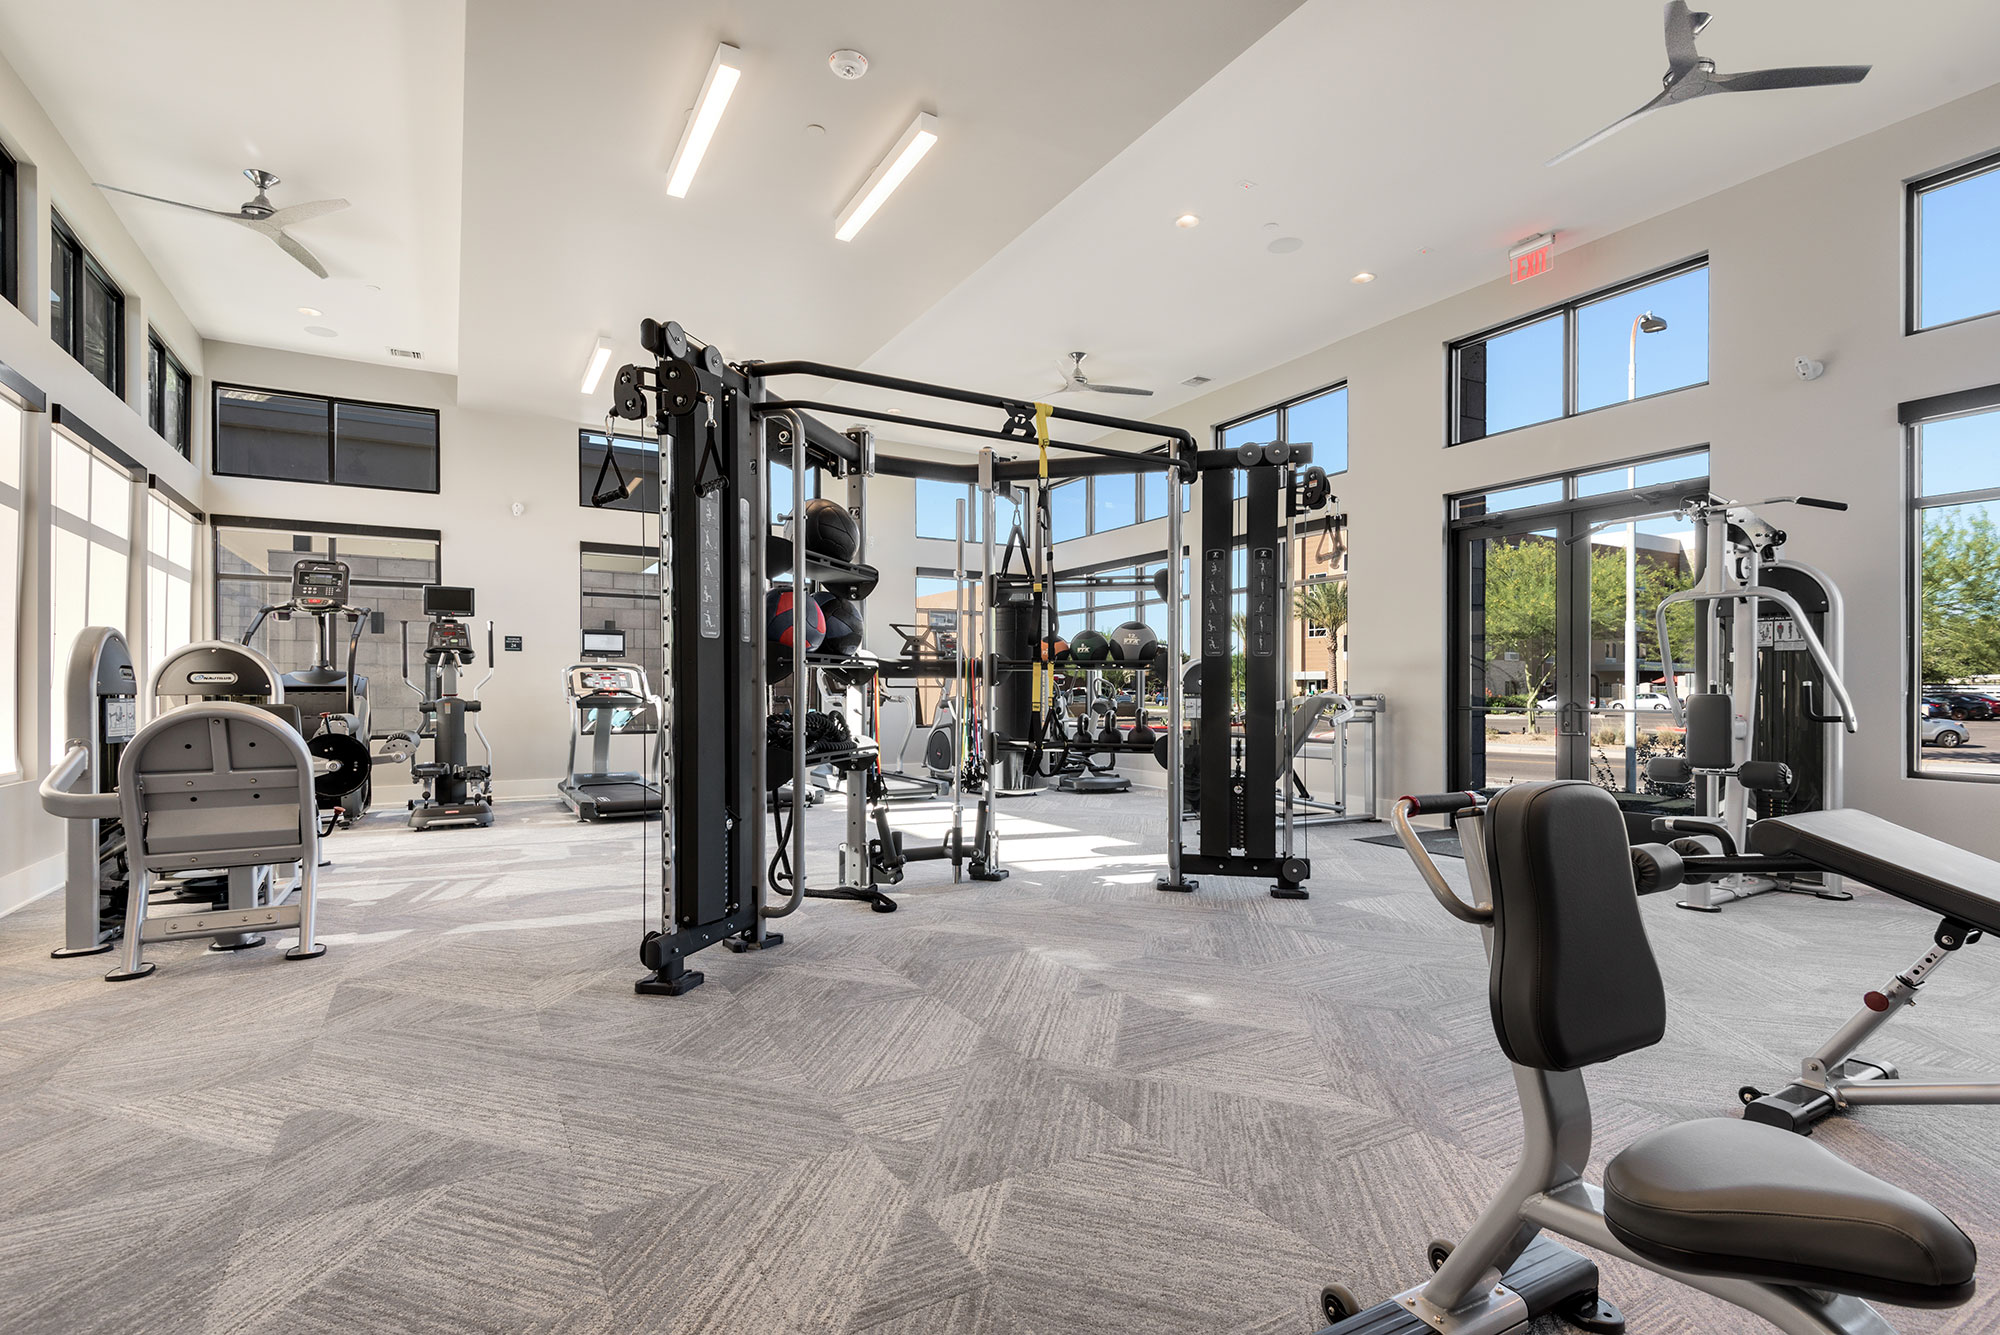 Riata - Wide view of fitness room